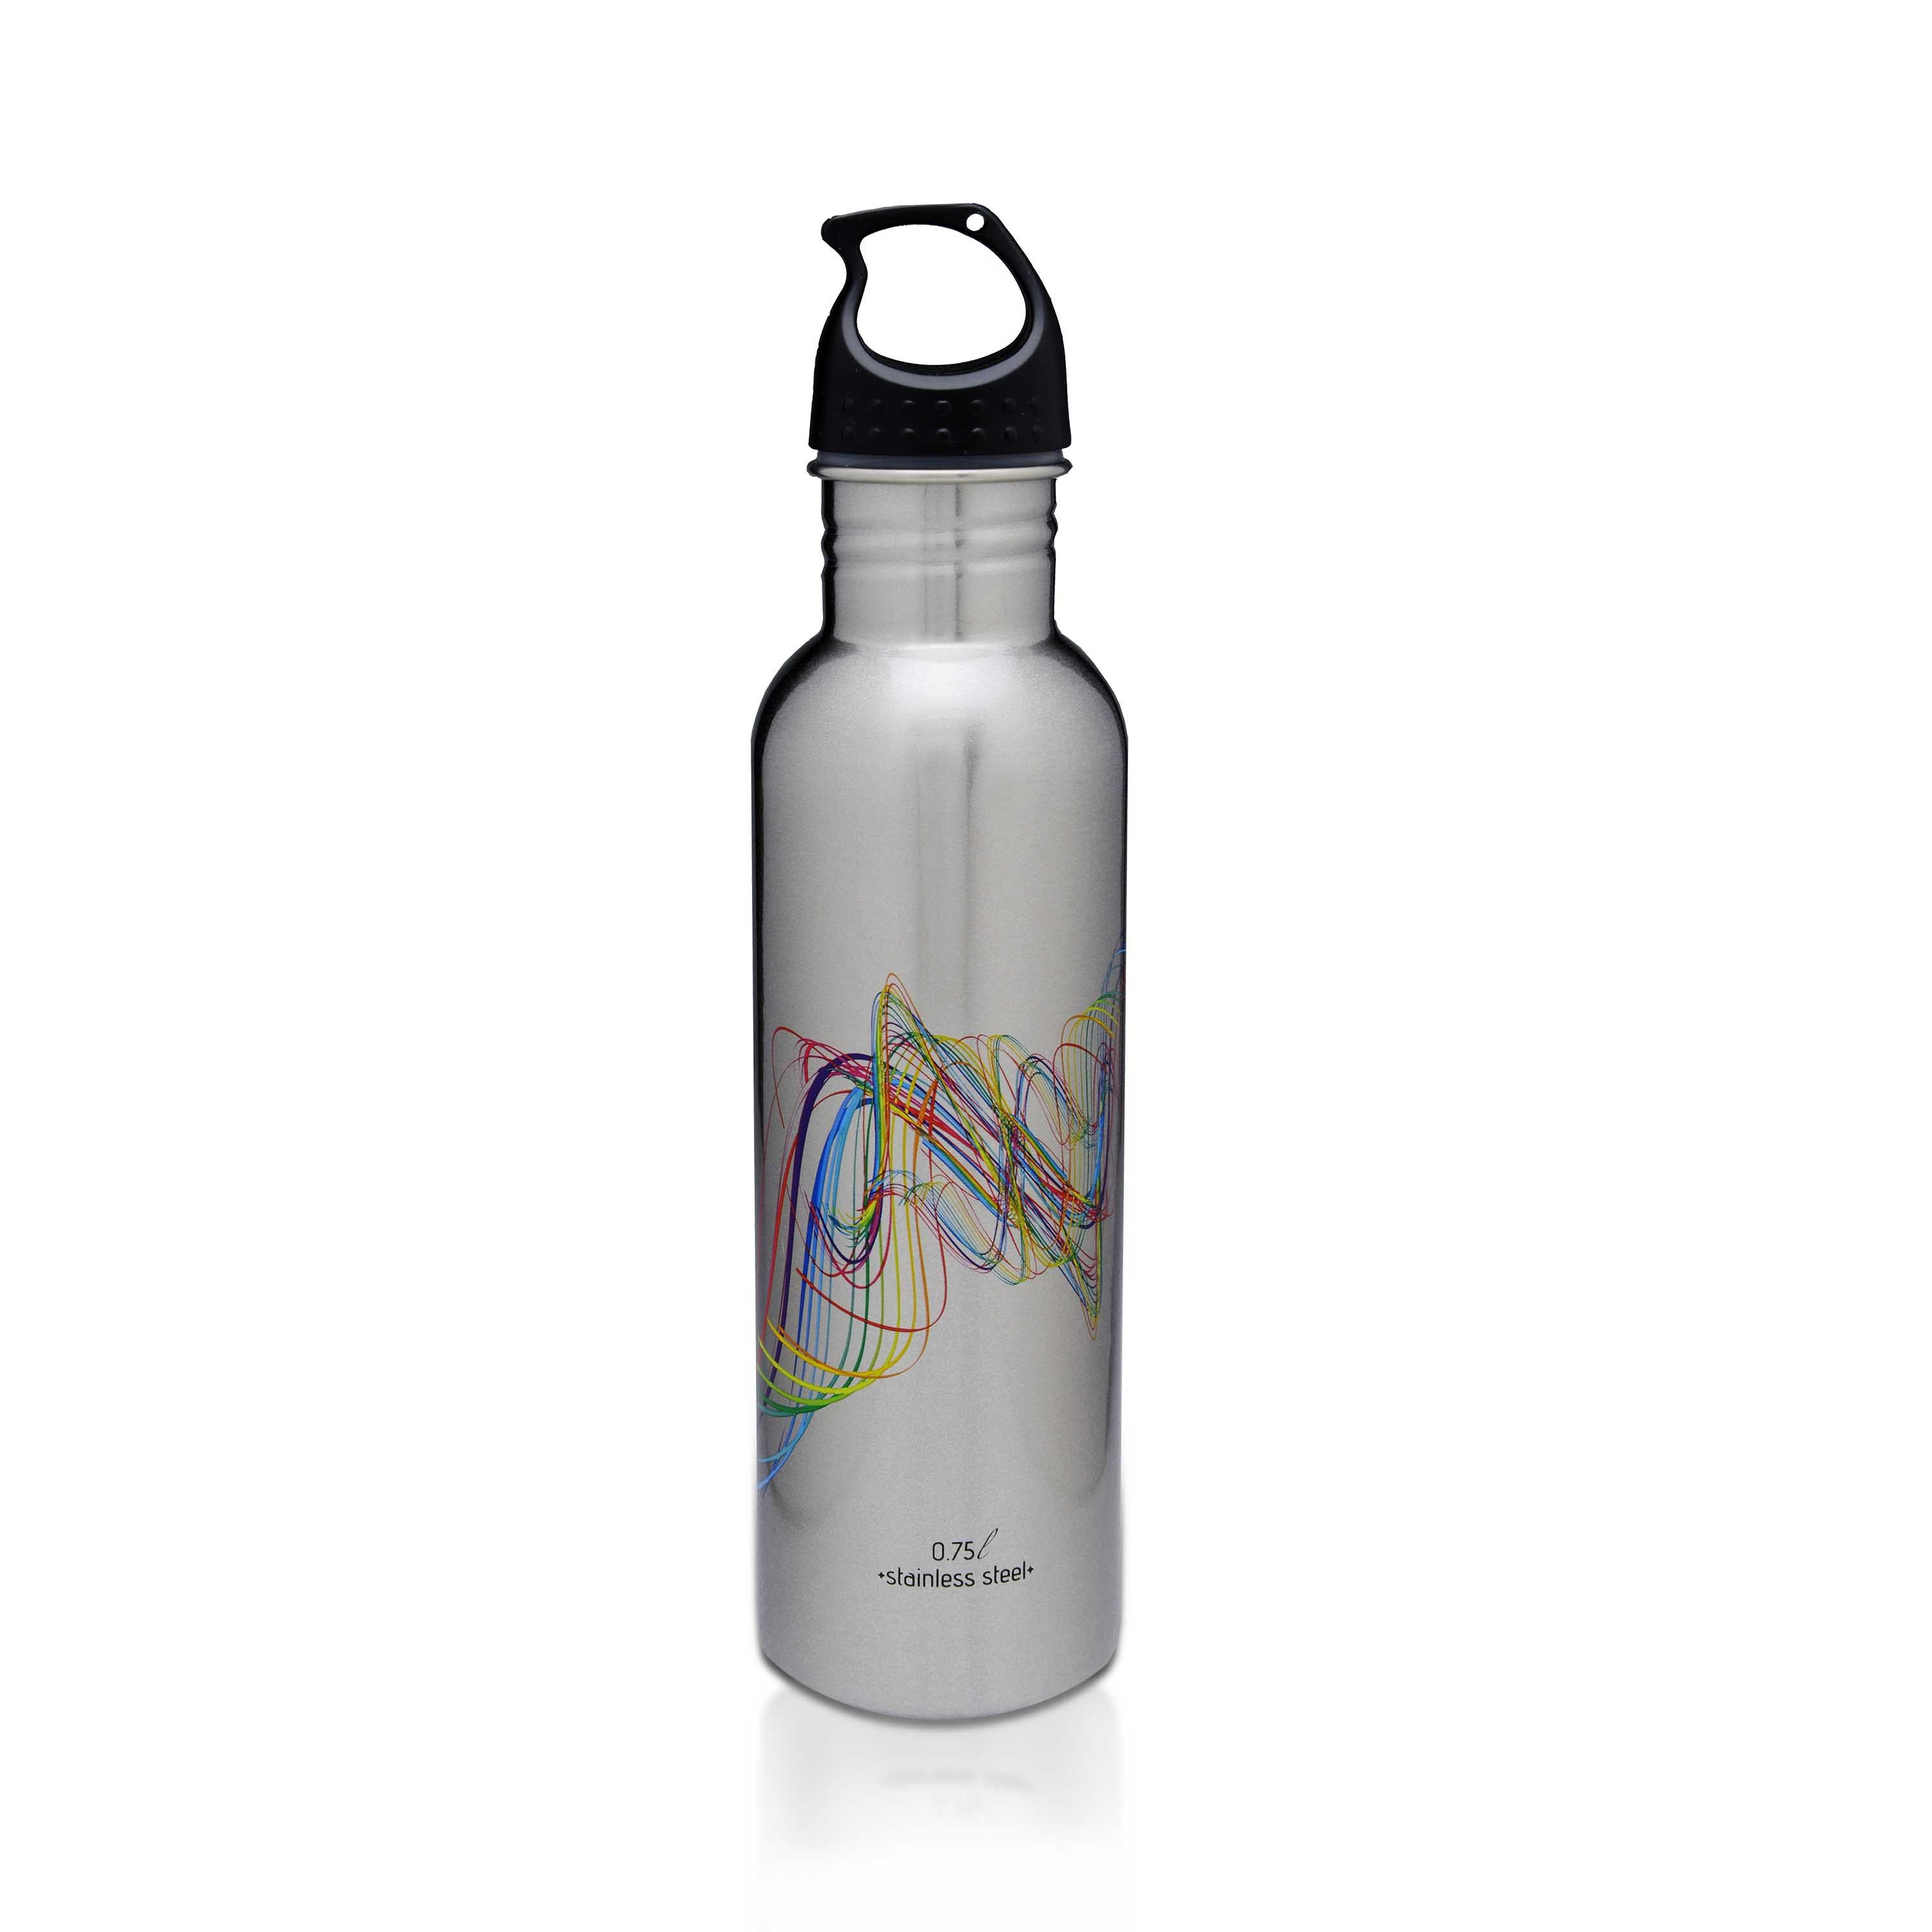 Hot Muggs Classic Medium Steel 750 ml, 1 Stainless steel Steel Bottles in Stainless Steel (Silver) + Multi Colour And Graphic Colour by HotMuggs